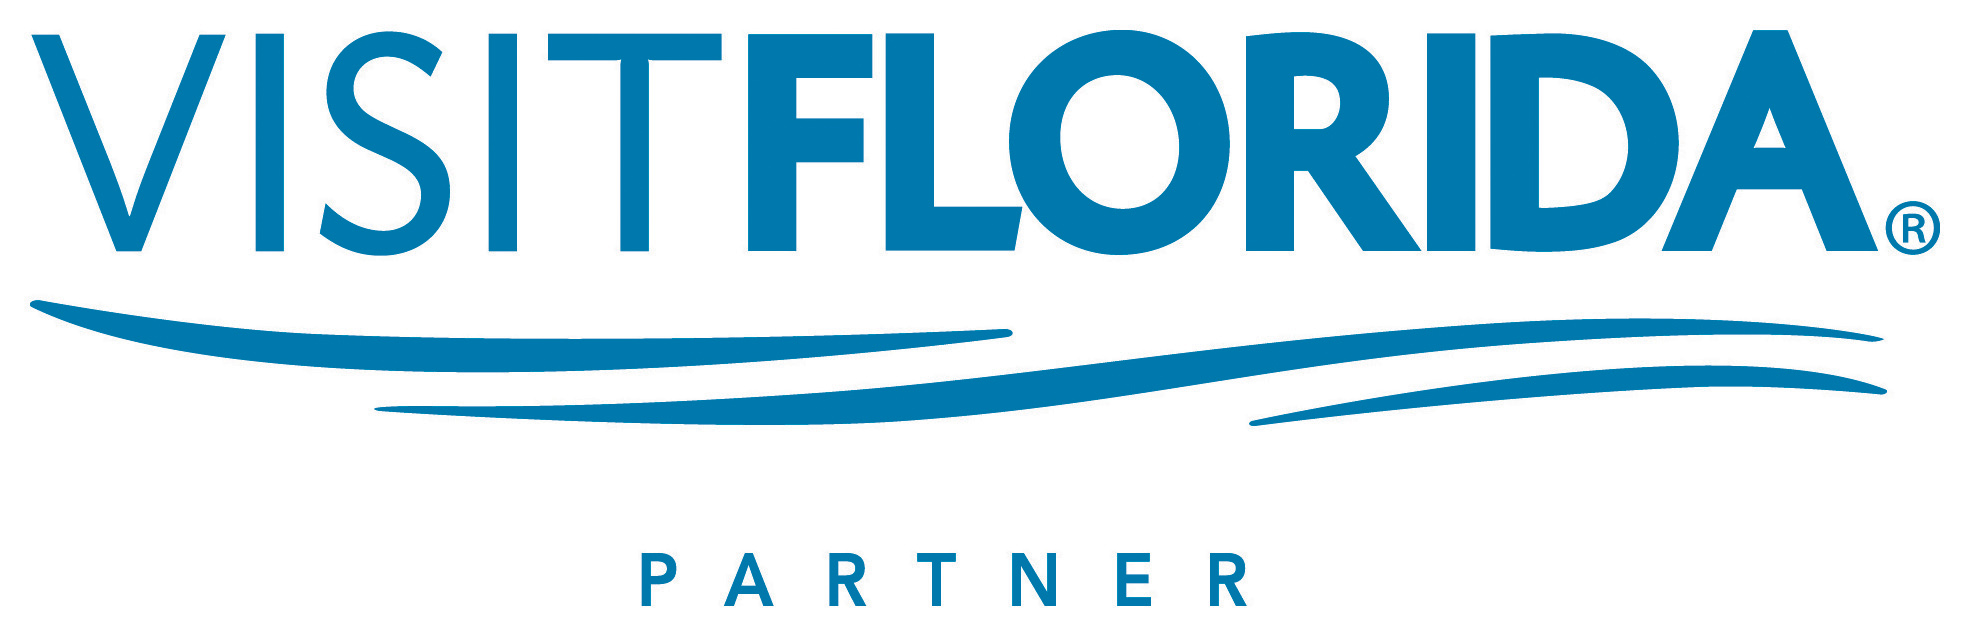 vf_partner_logo_307_blue.jpg